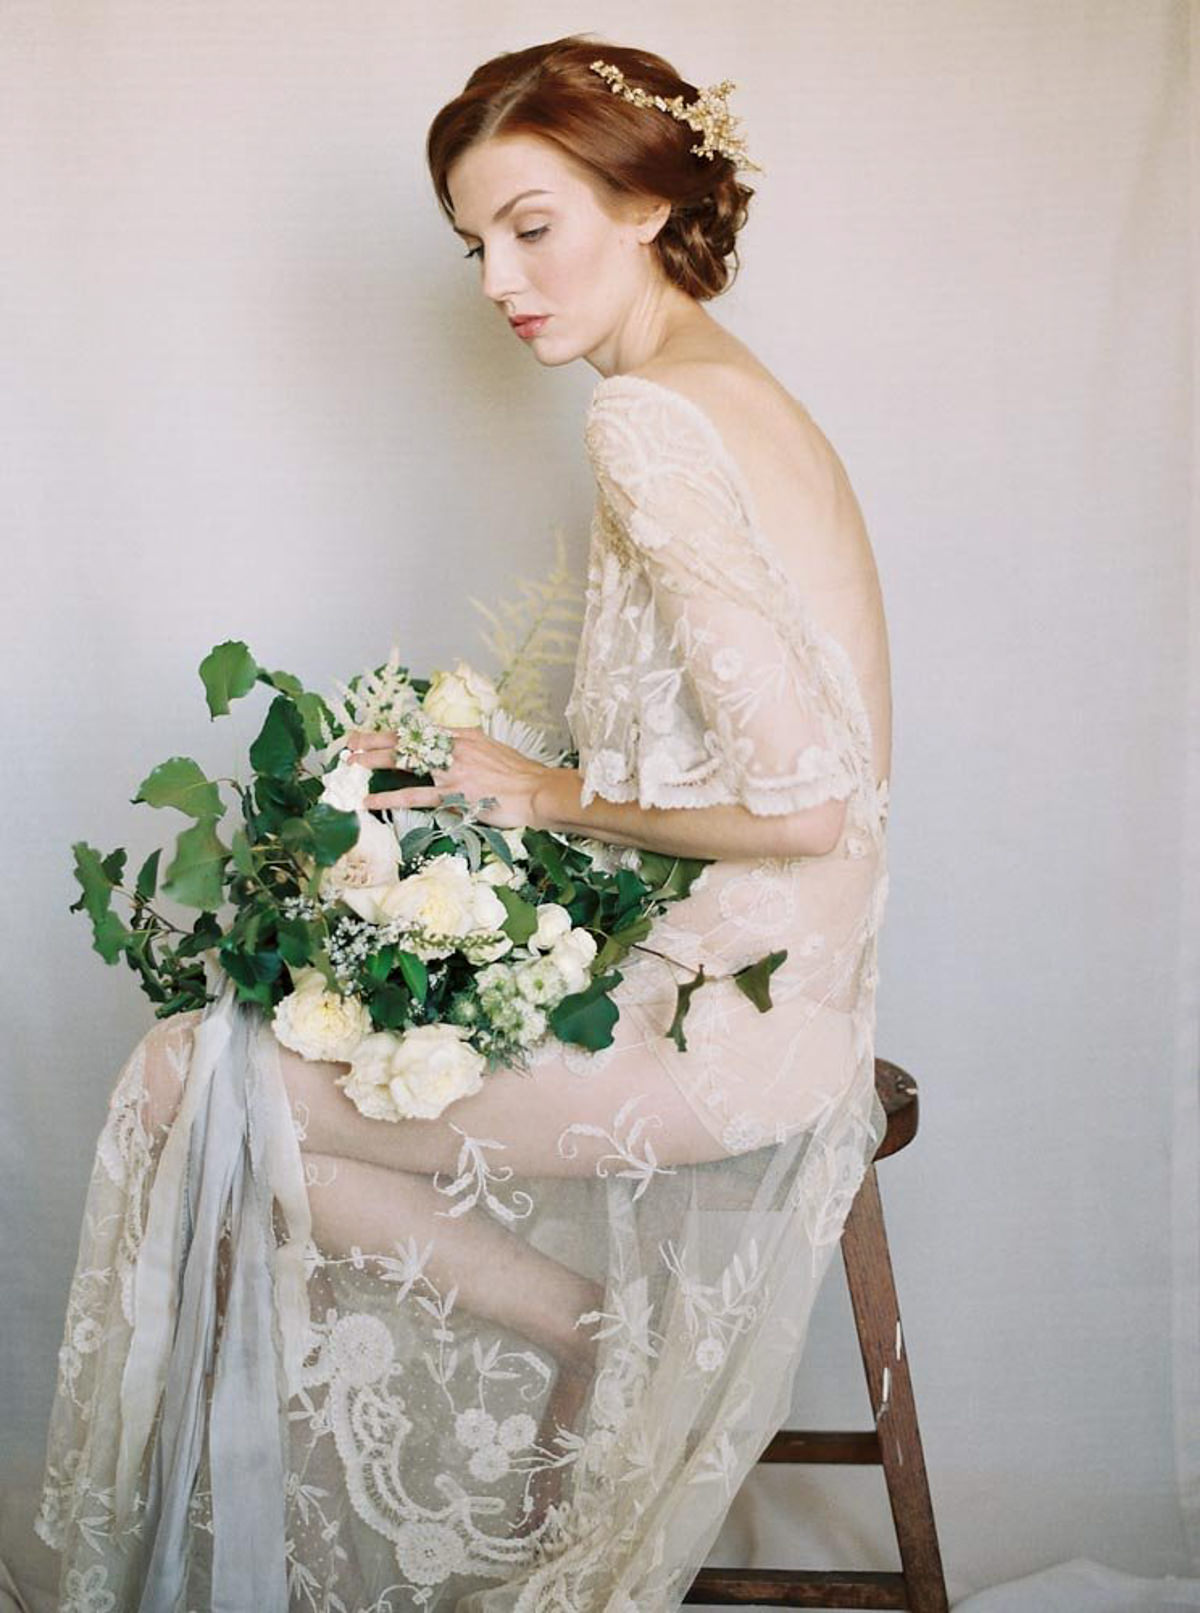 Fine Art Bridal Portrait Inspiration photo by Matoli Keely Photography